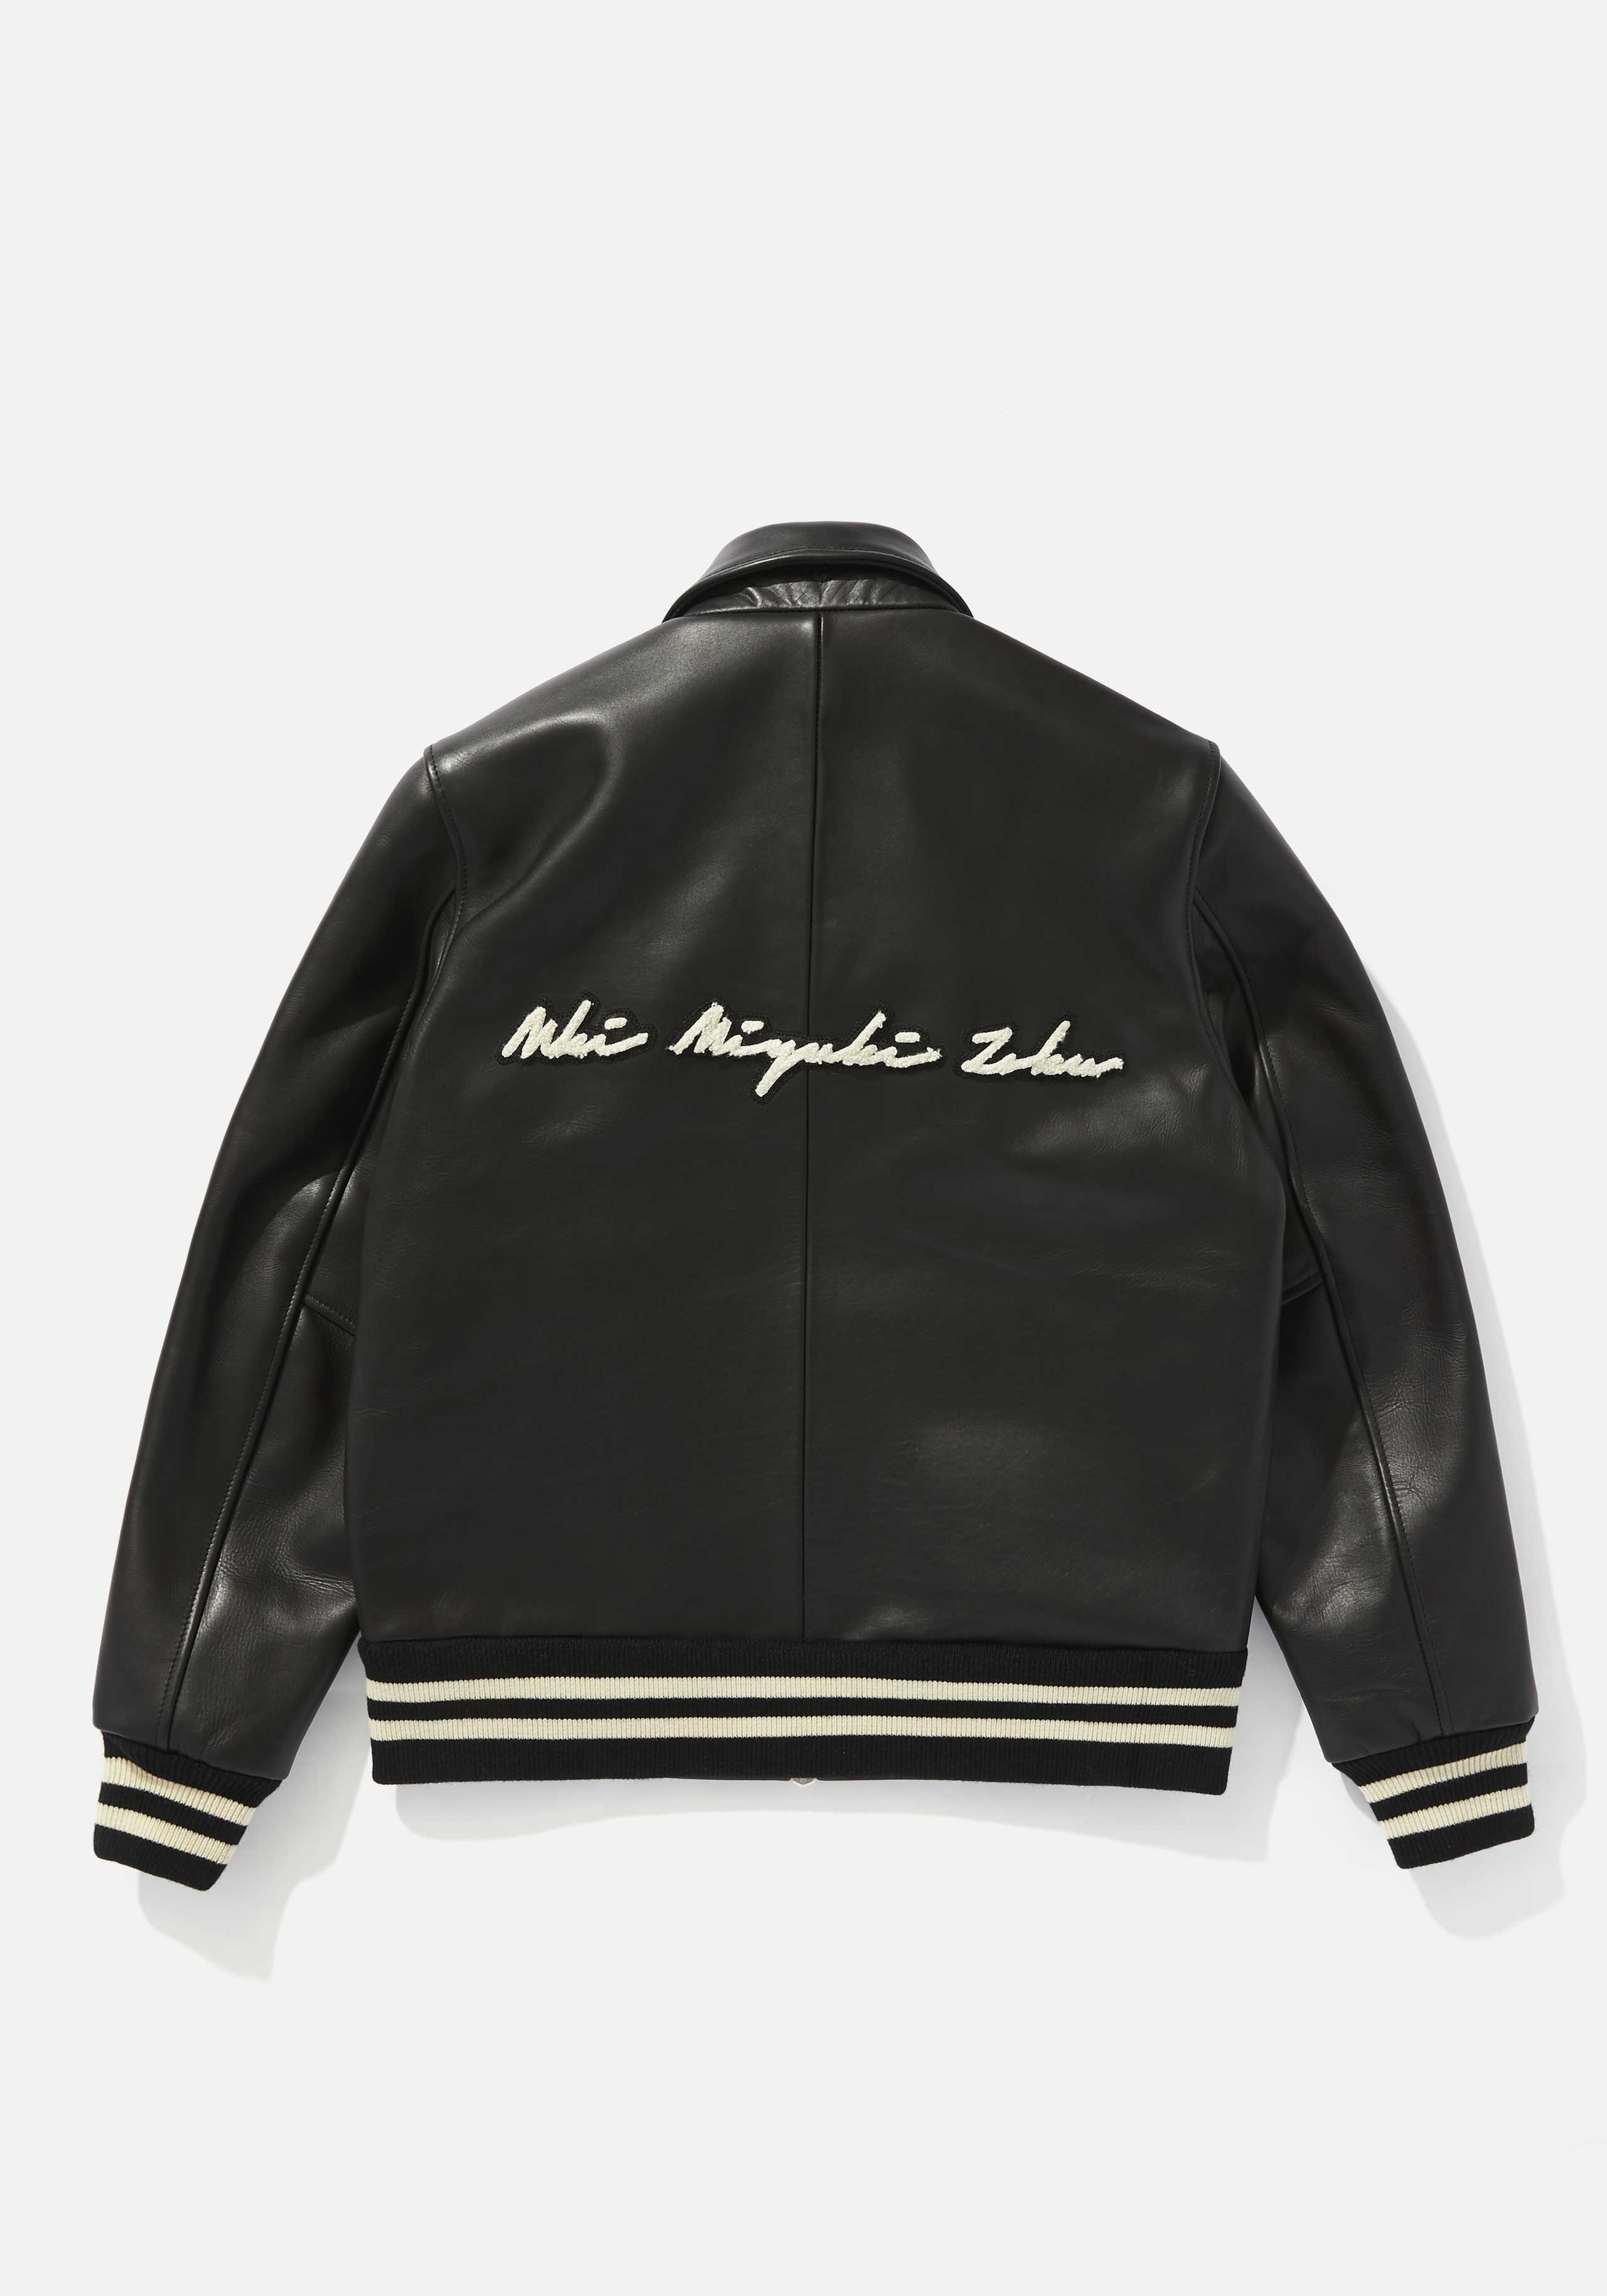 mki full leather rider varsity 2